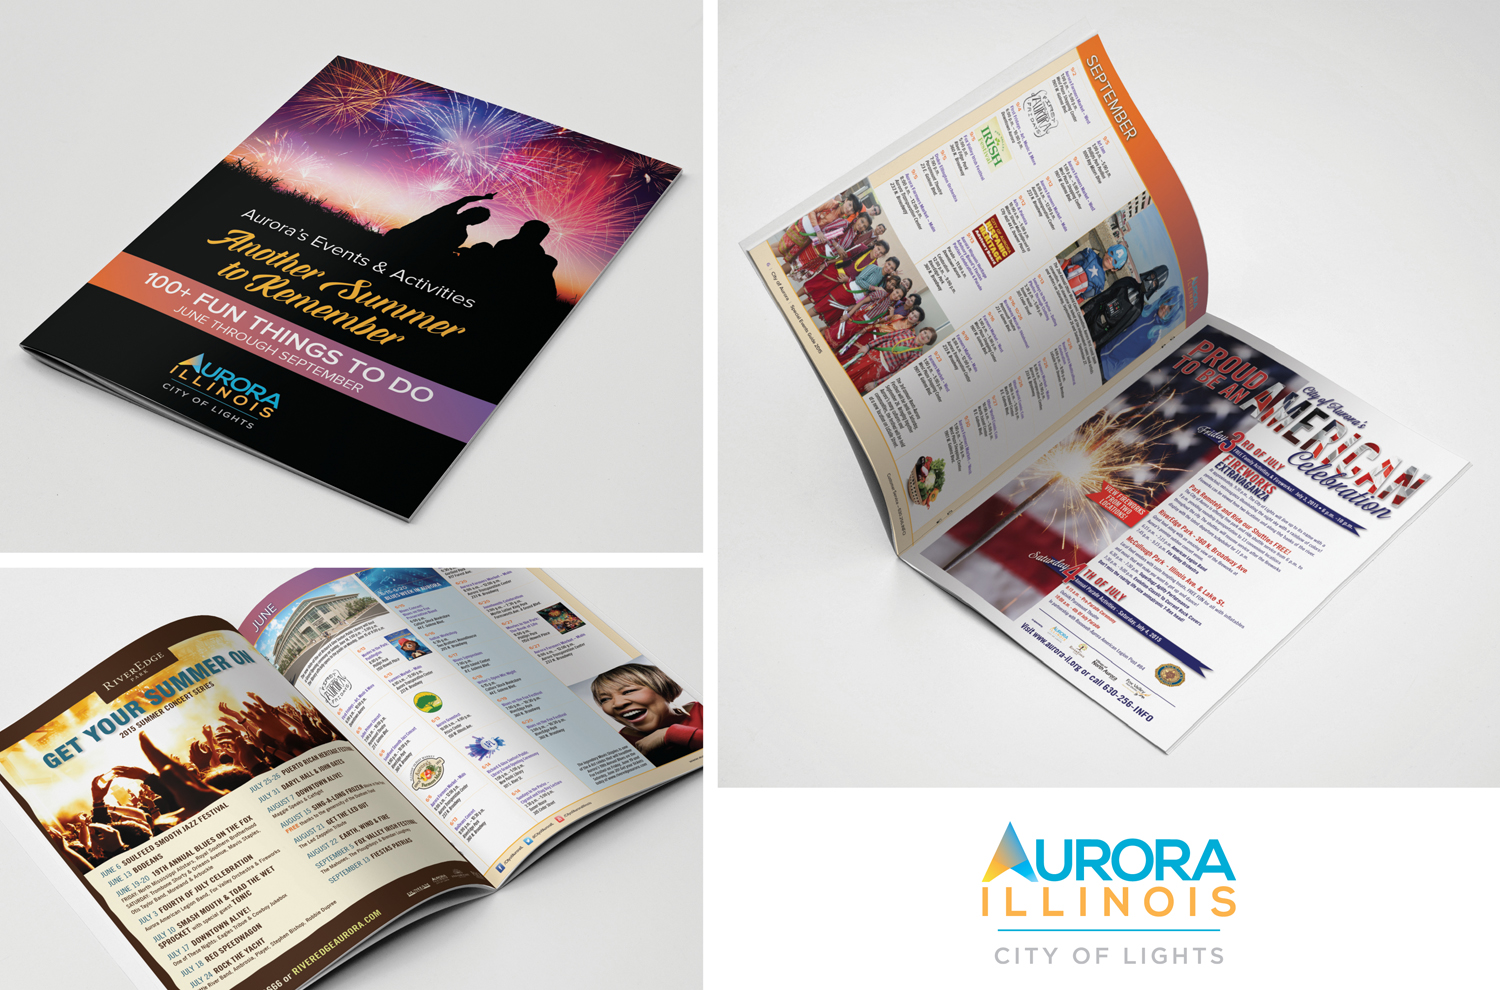 SUMMER EVENTS & ACTIVITIES GUIDE FOR THE CITY OF AURORA, ILLINOIS